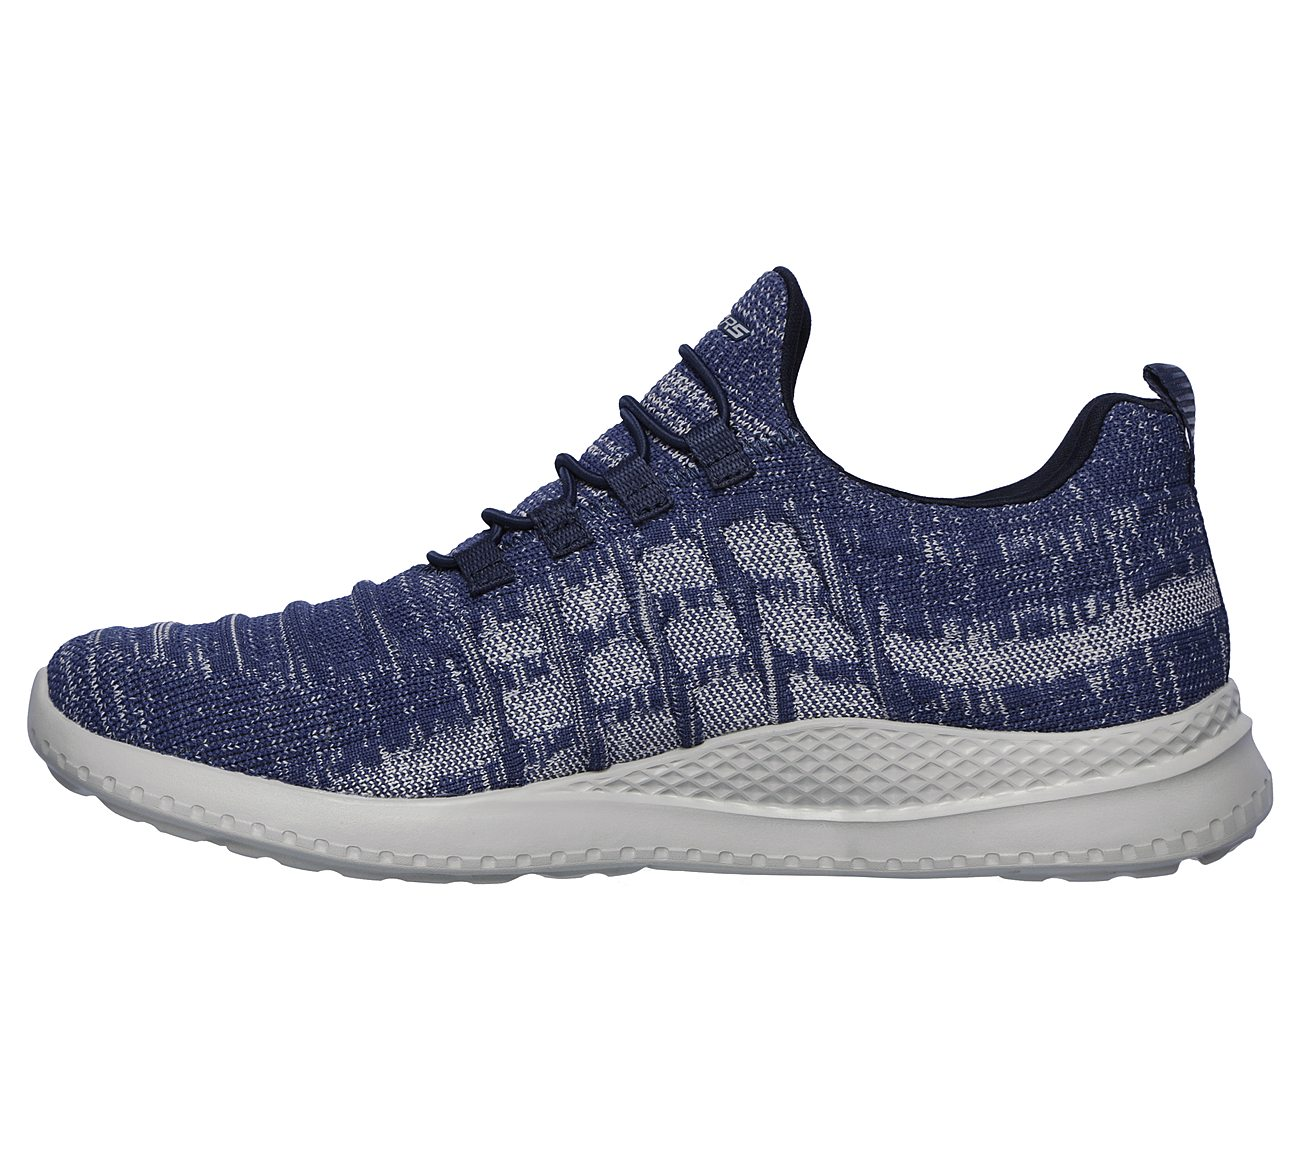 Buy SKECHERS Matera - Freymere Sport Shoes